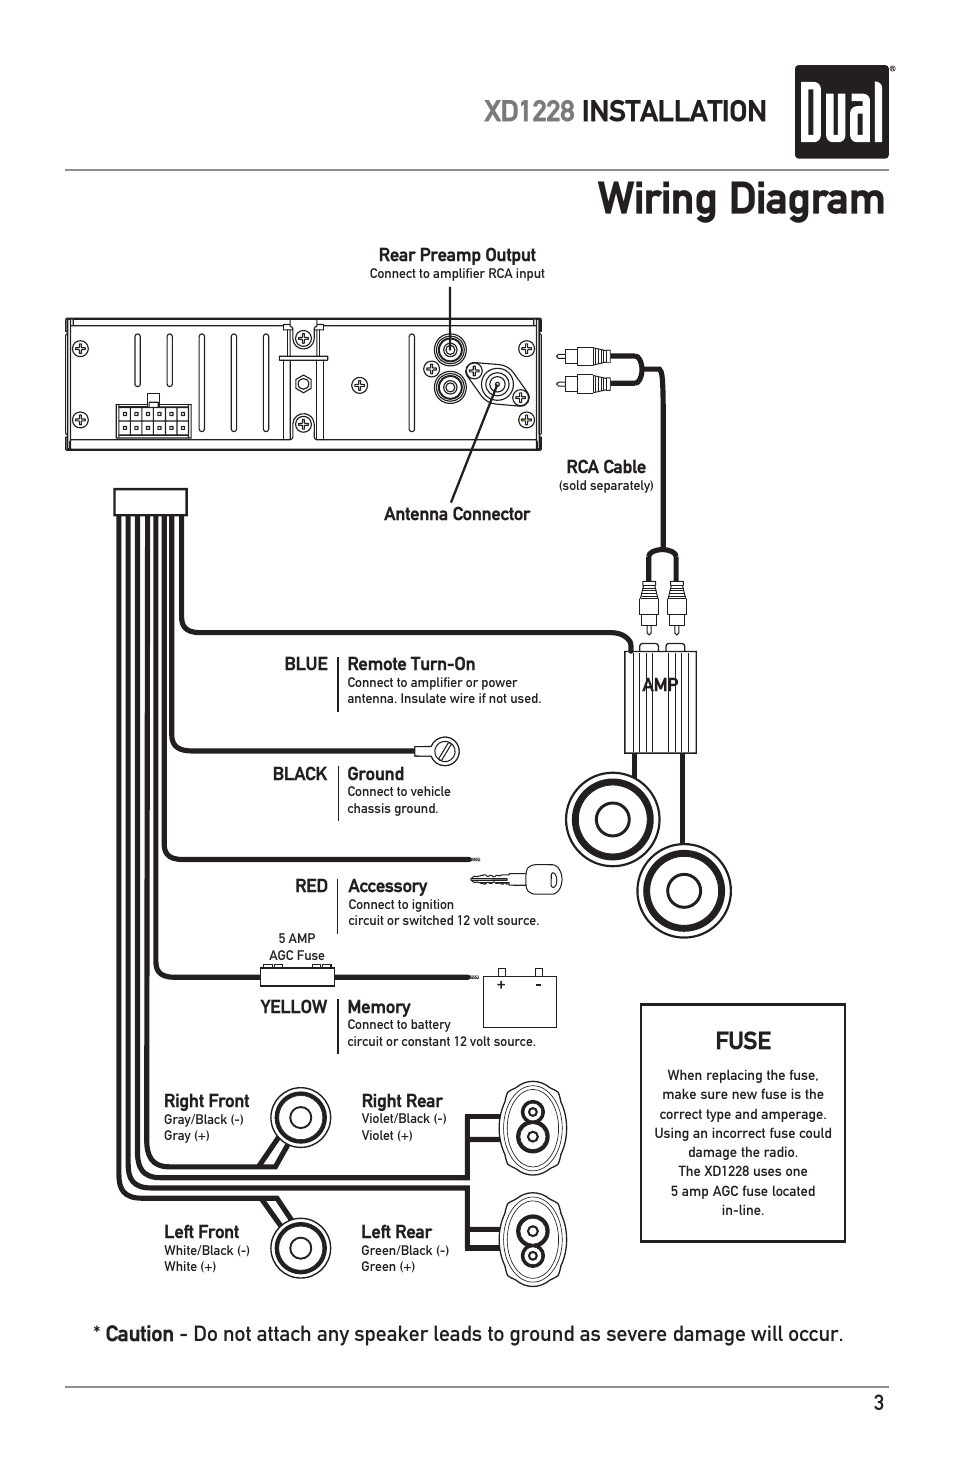 dual xd1228 page3 dual radio wiring diagram diagram radio dual wiring xdm16bt ouku double din wiring harness at n-0.co